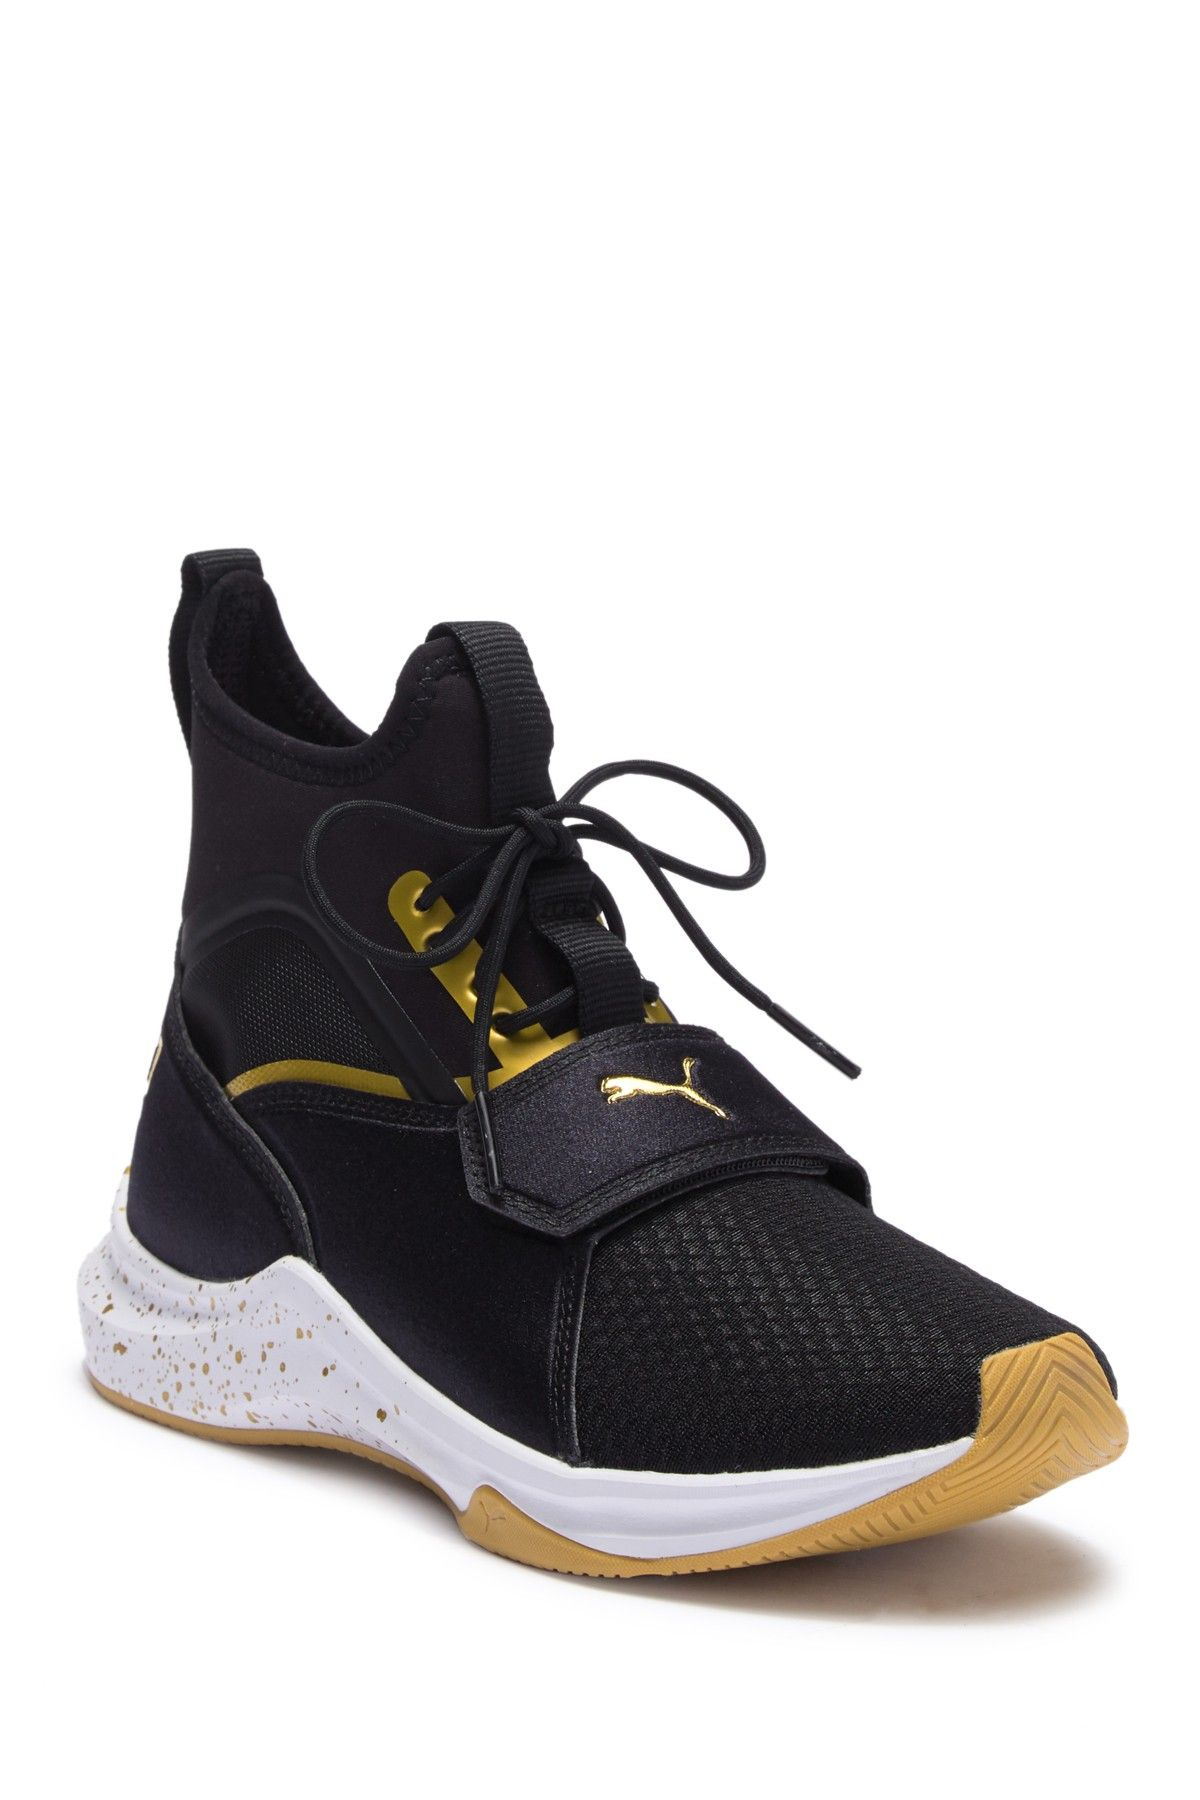 7127ad7a3c67 Phenom Gold Sneaker by PUMA on  nordstrom rack